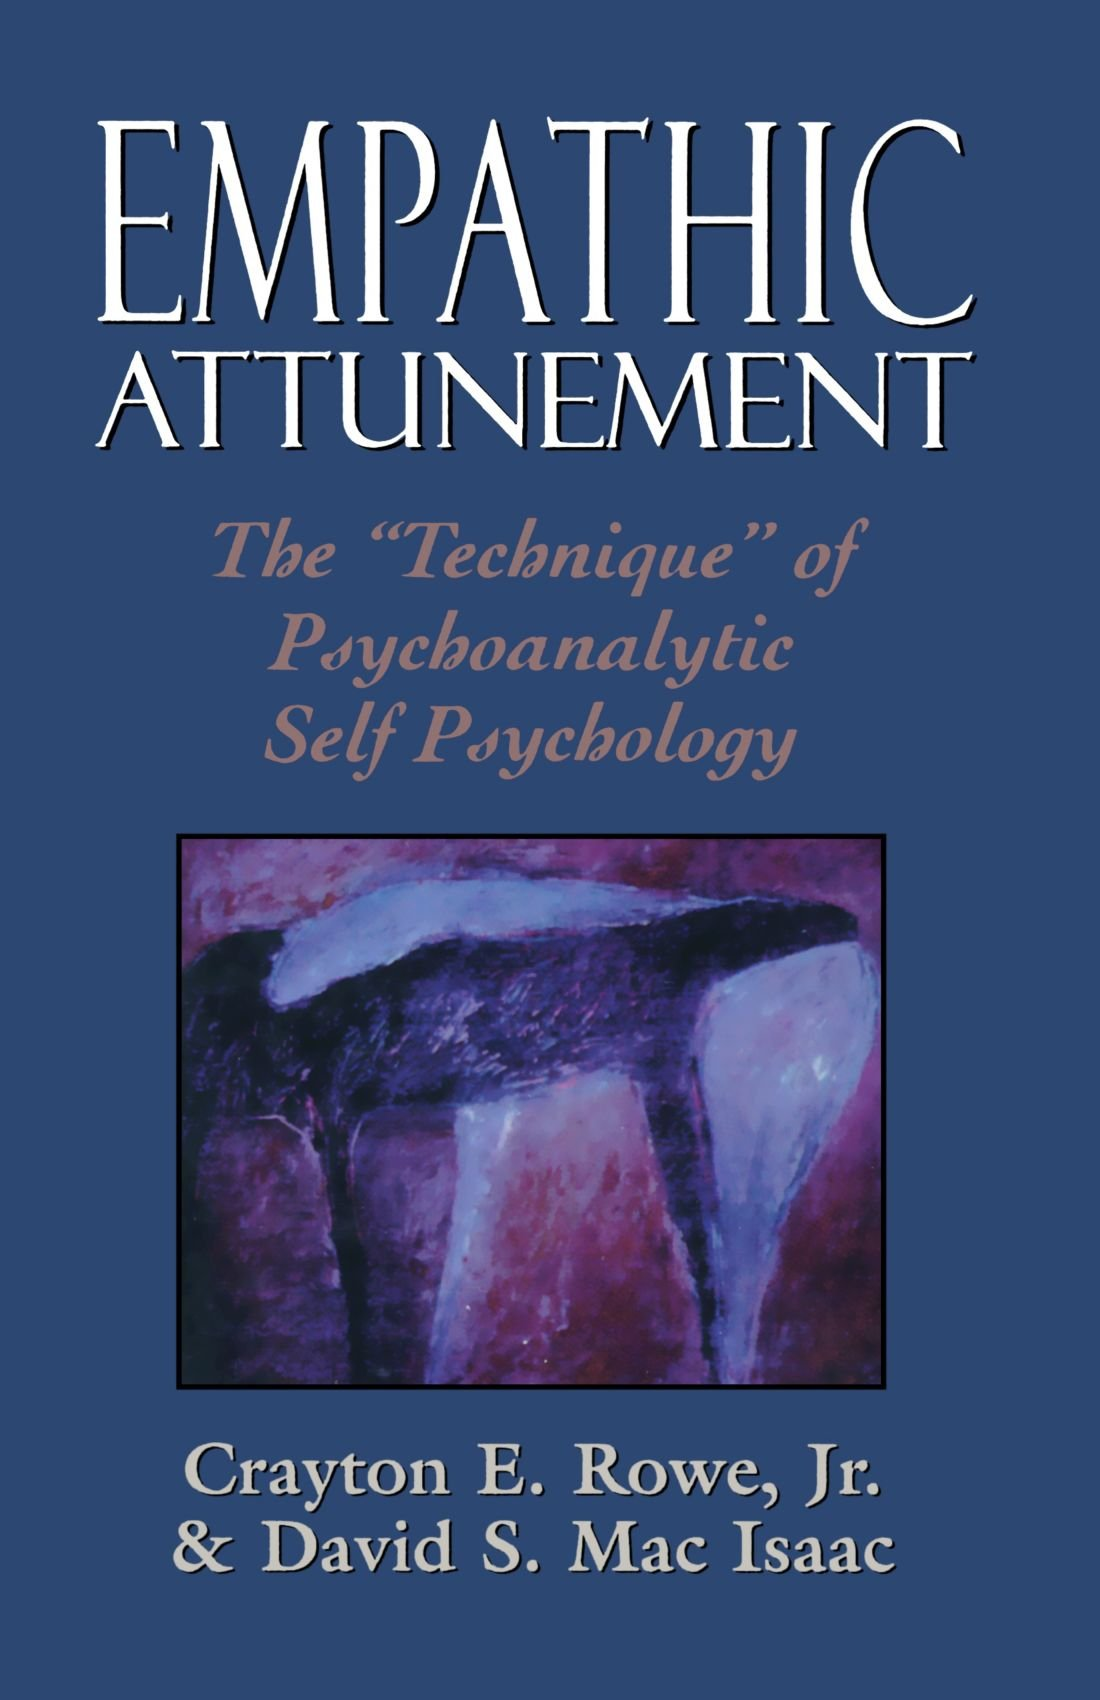 Empathic Attunement: The 'Technique' of Psychoanalytic Self Psychology by Jason Aronson